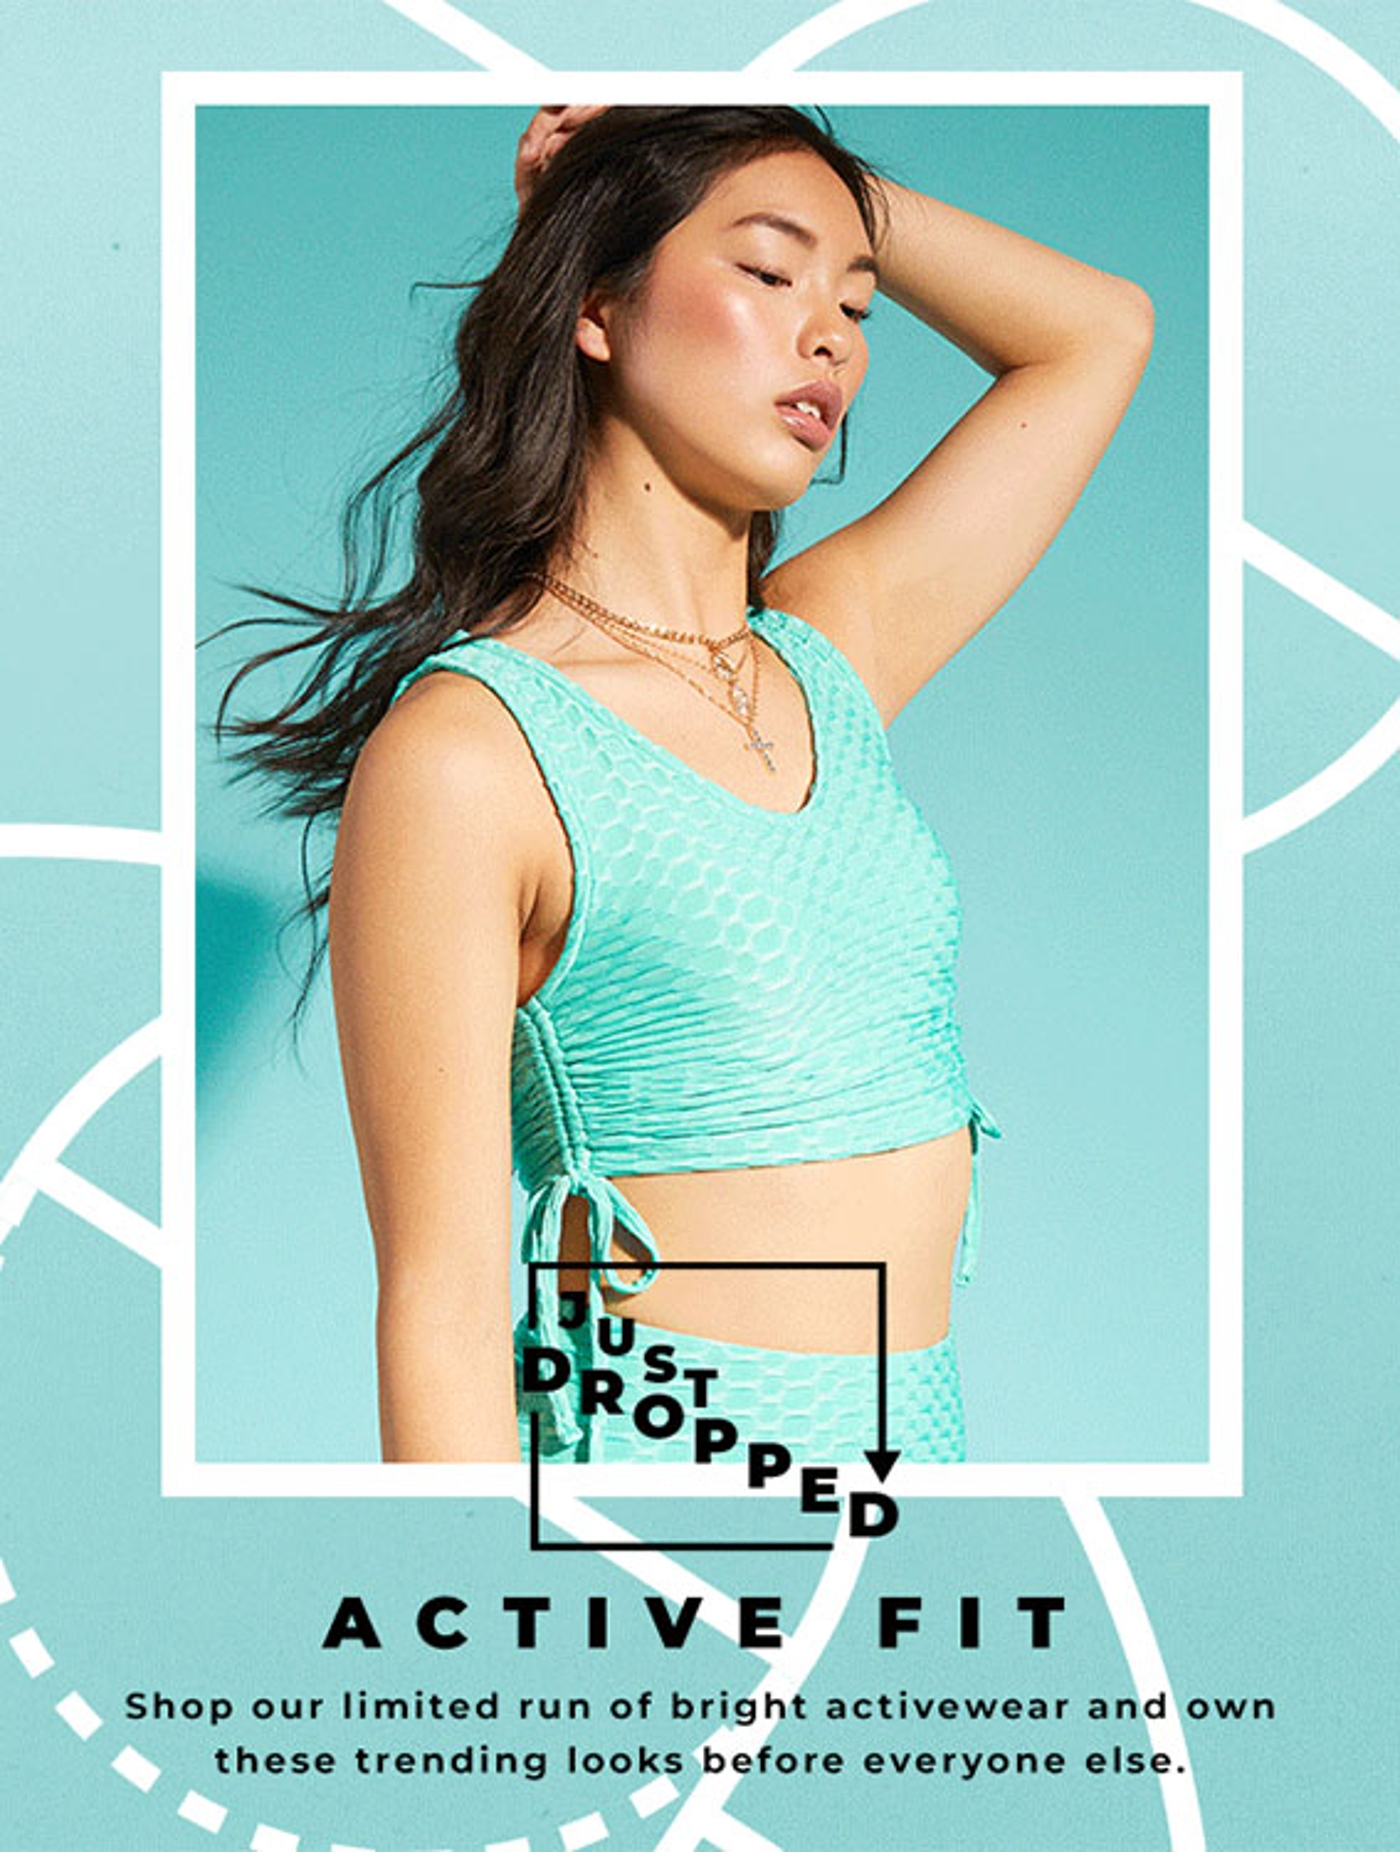 THE ACTIVE FIT COLLECTION